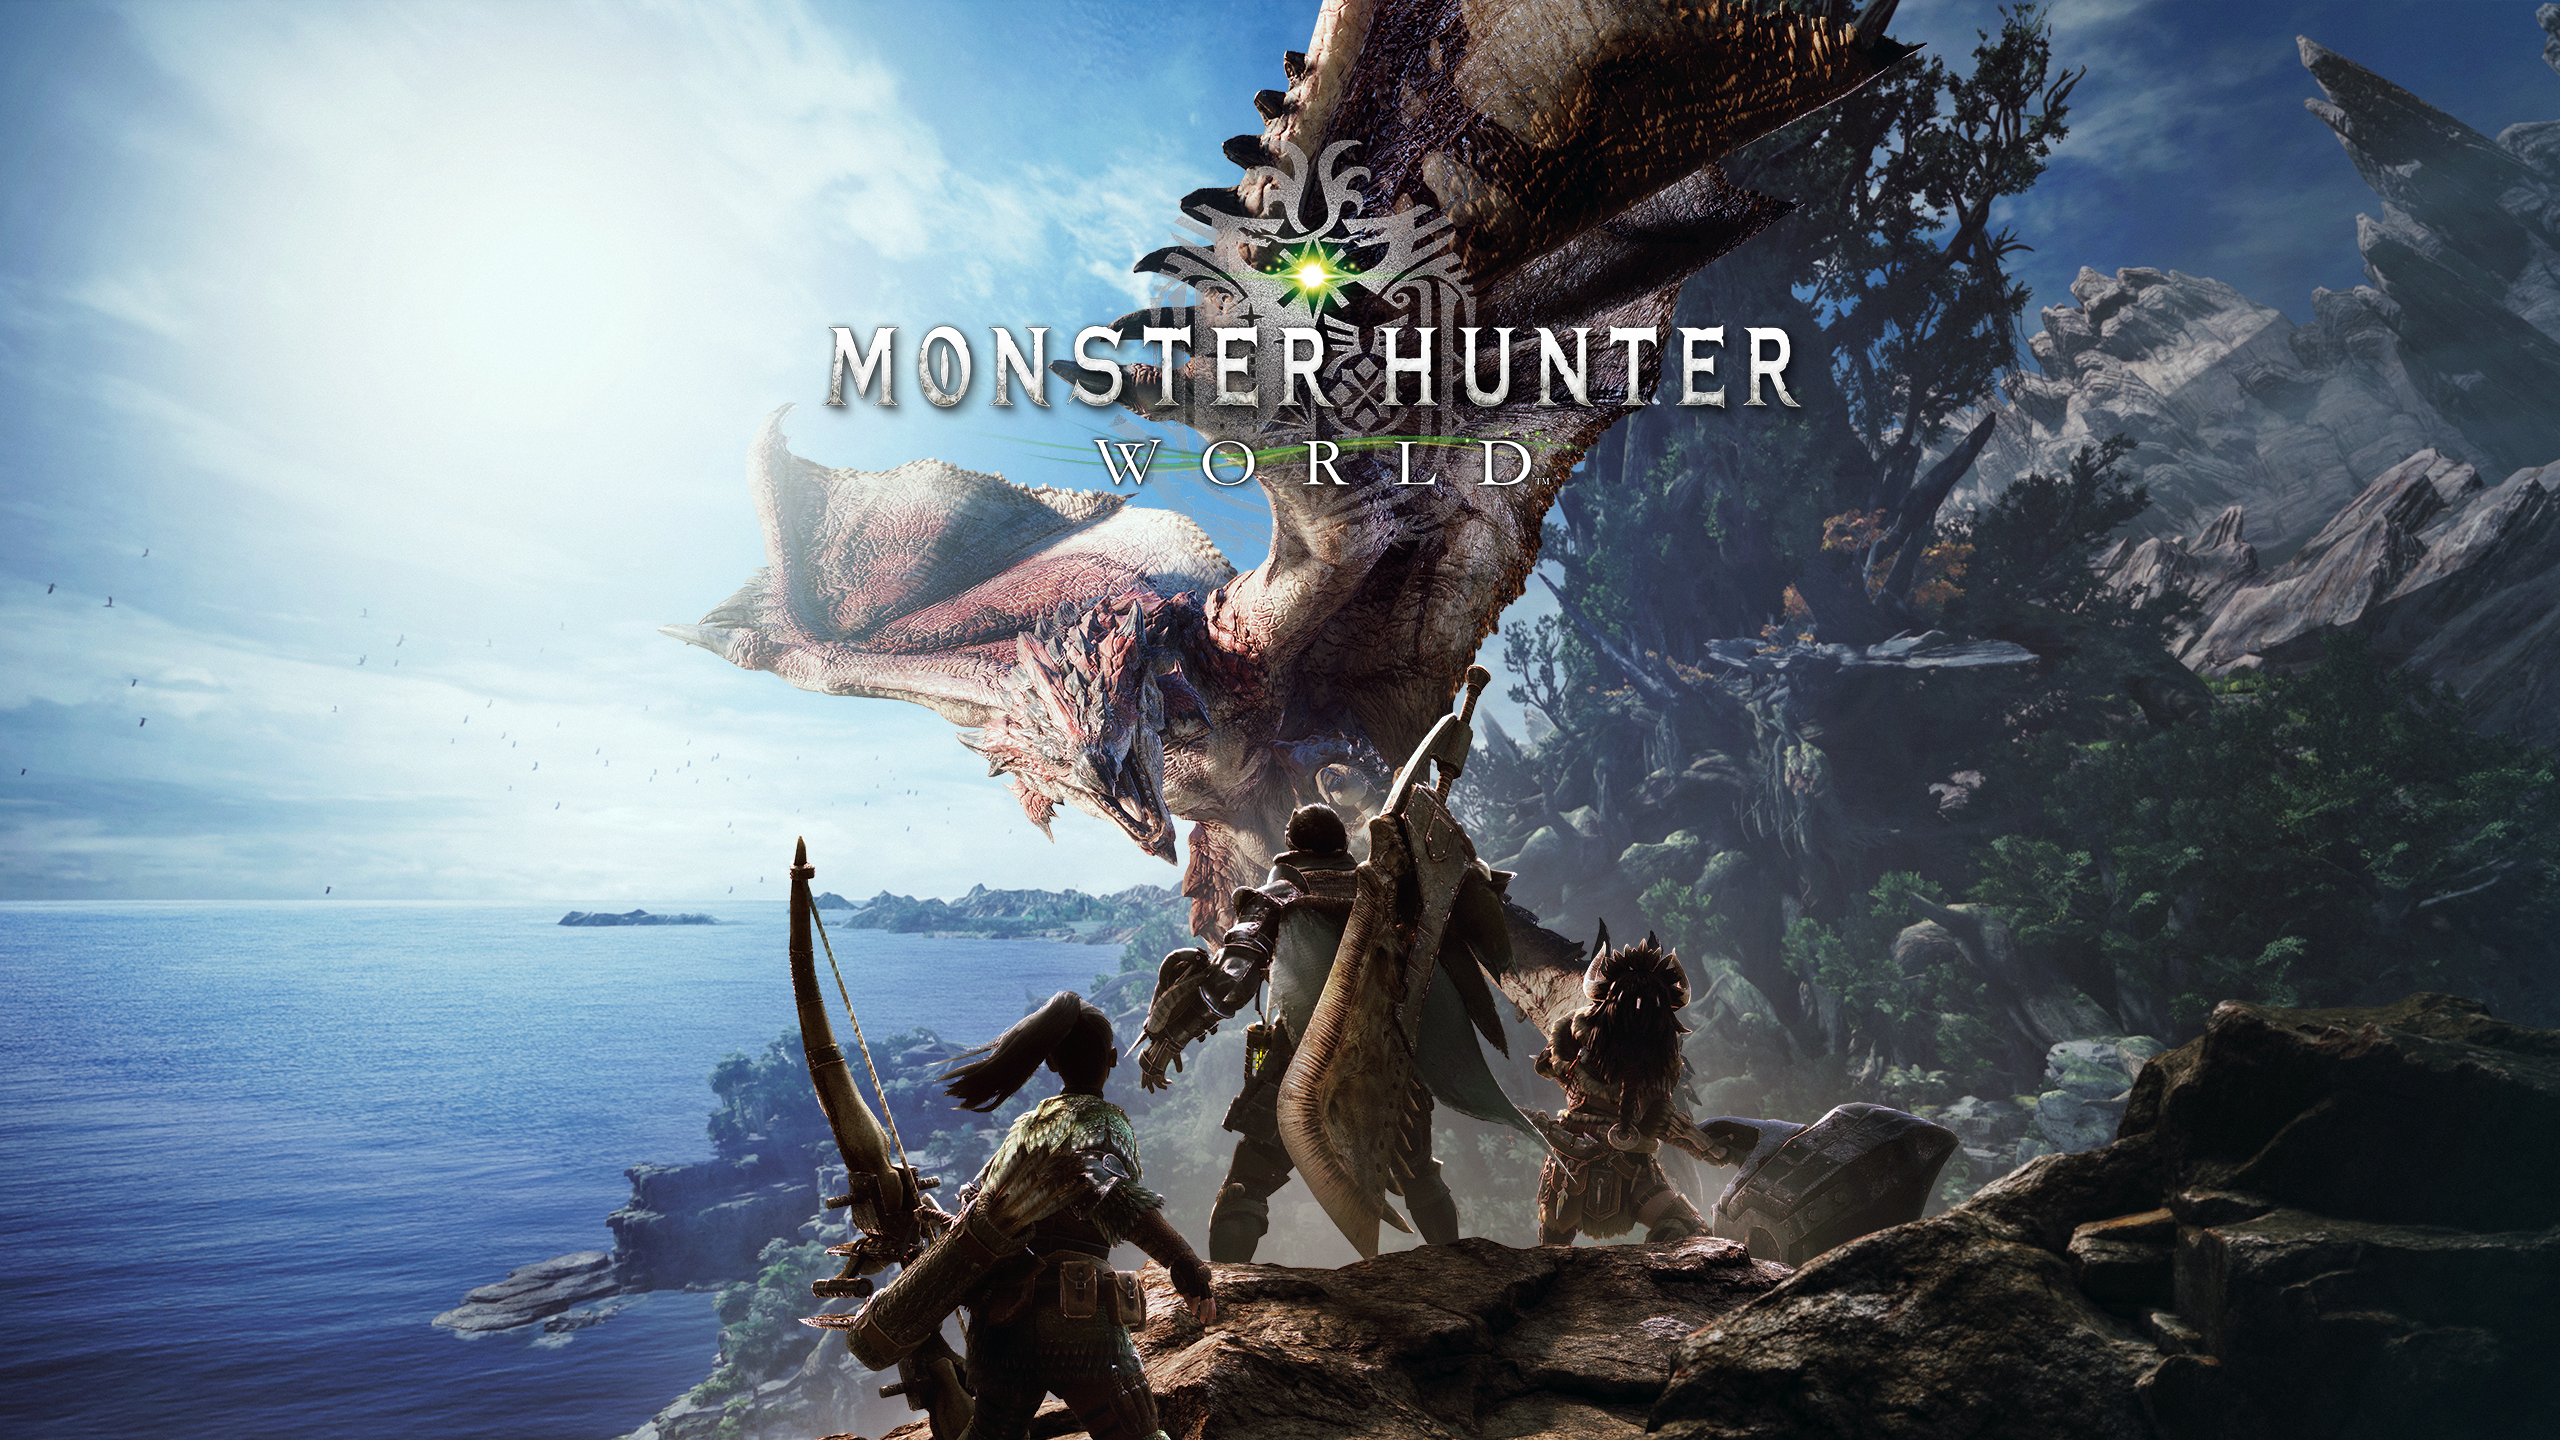 http://media.comicbook.com/2017/12/monster-hunter-world-listing-thumb-01-ps4-us-18sep17-1065435.png